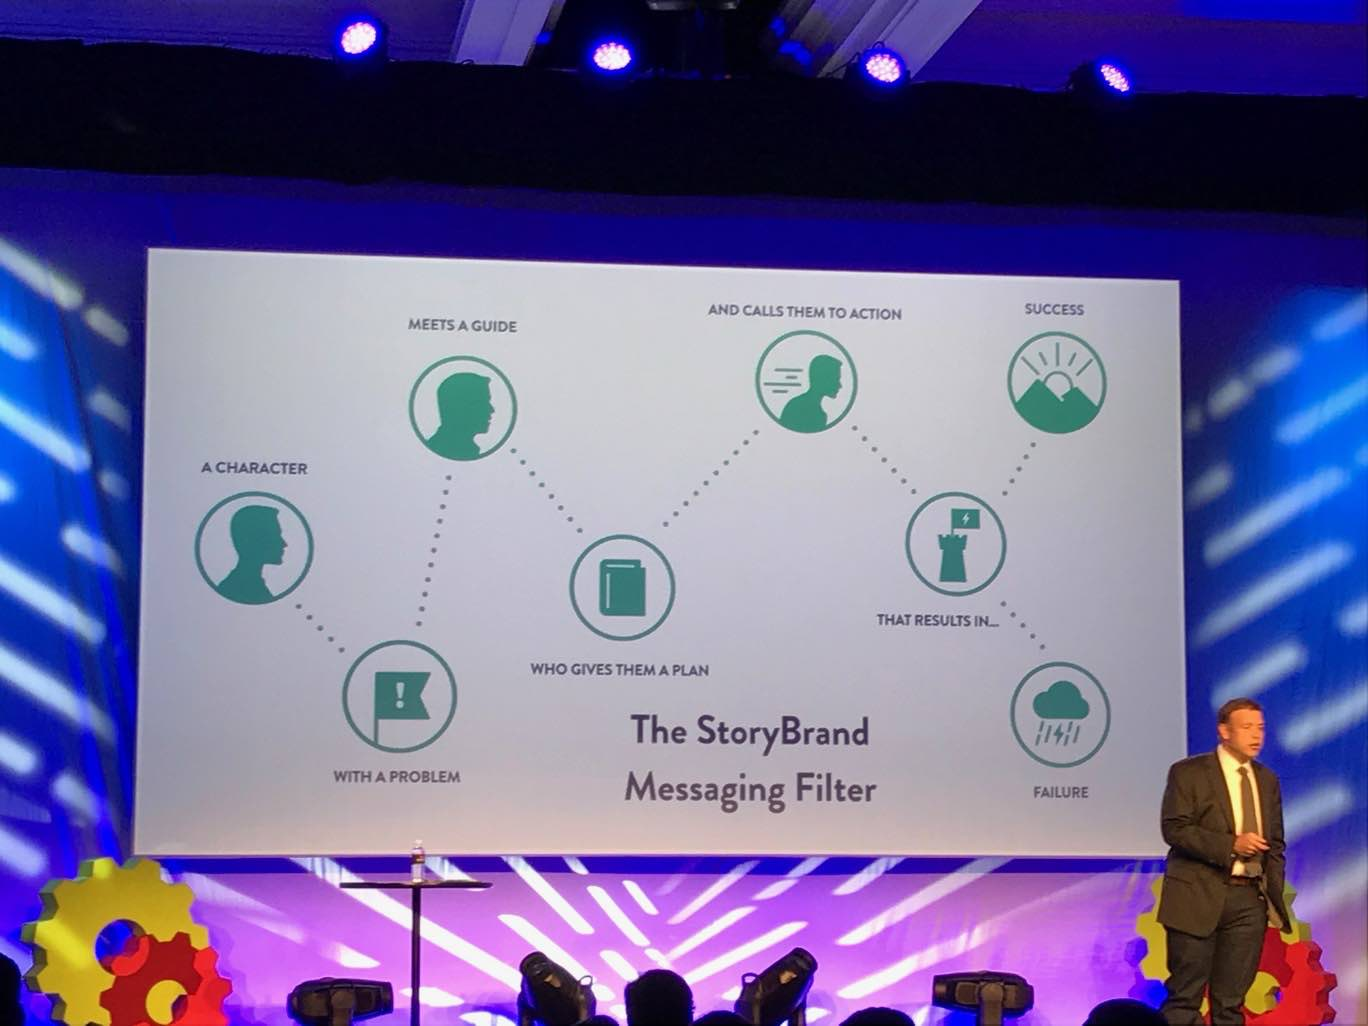 Donald Miller and the Story Brand Messaging Filter